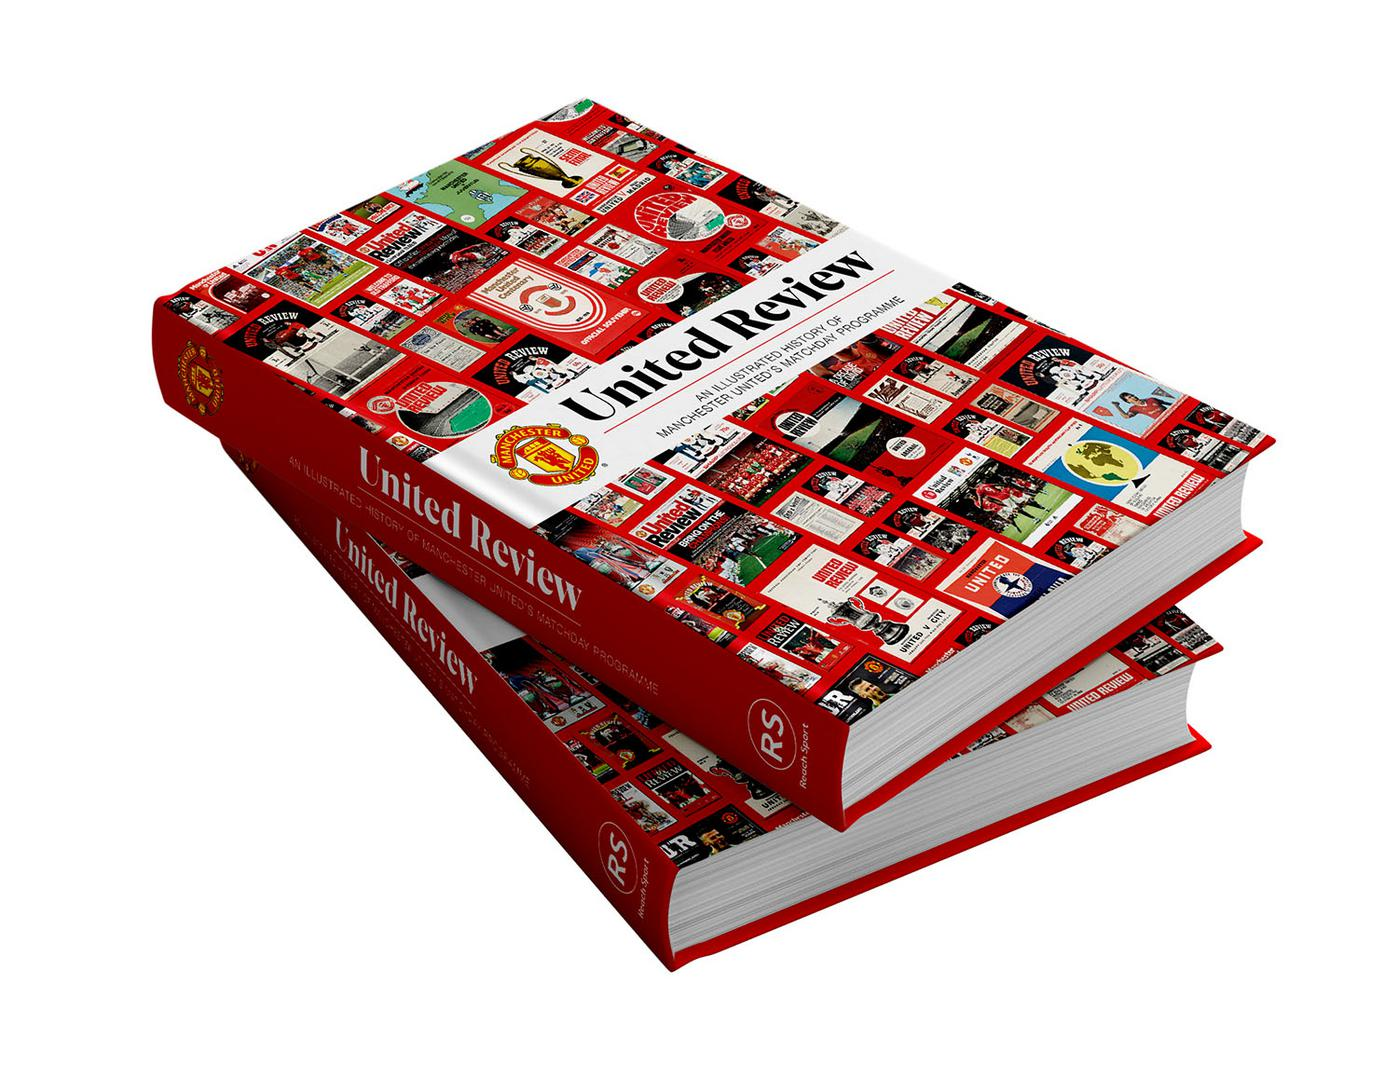 United Review book